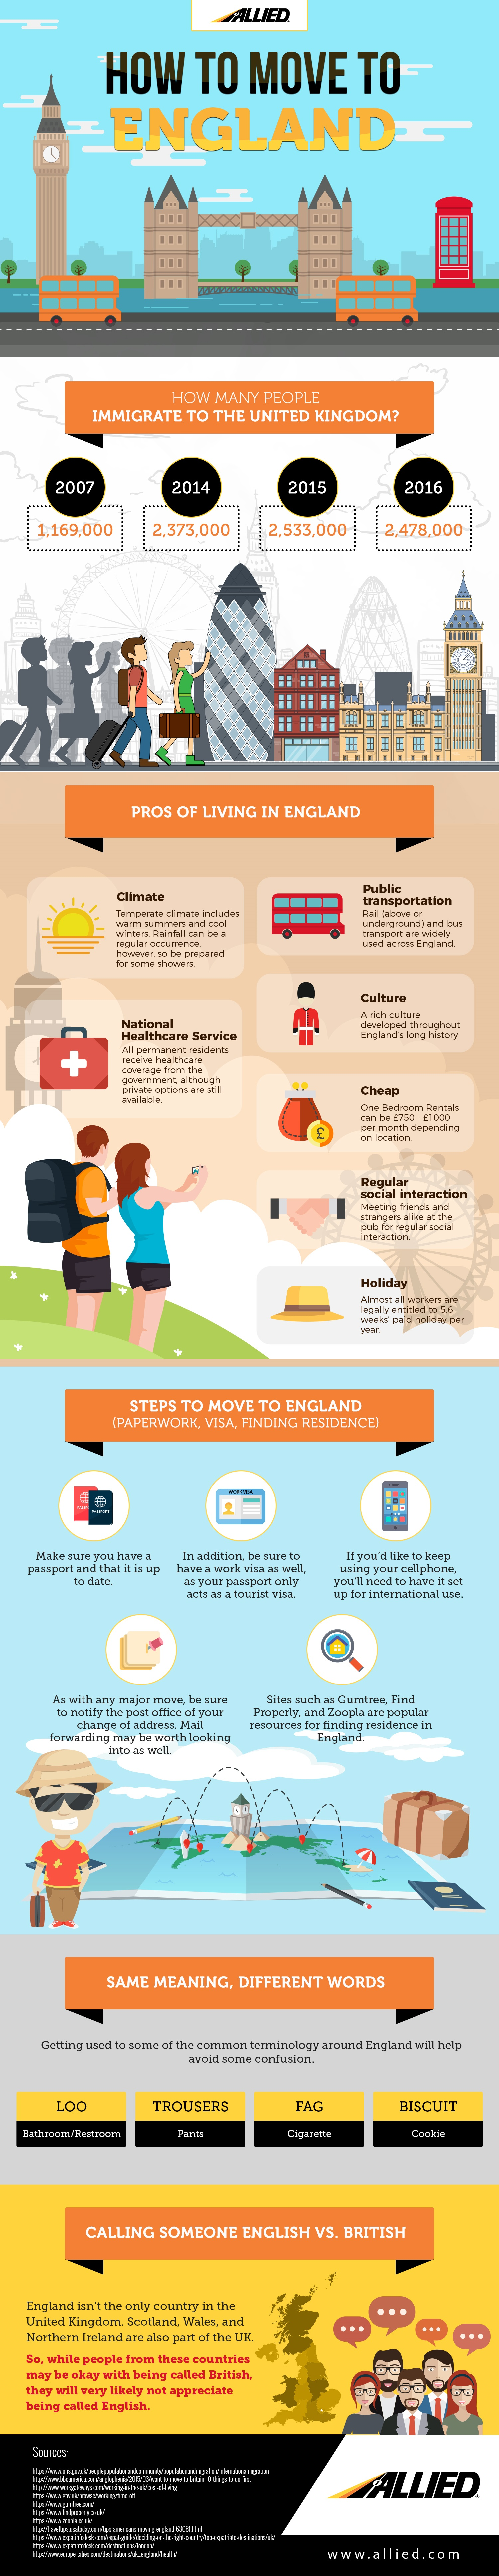 Moving to England - Infographic